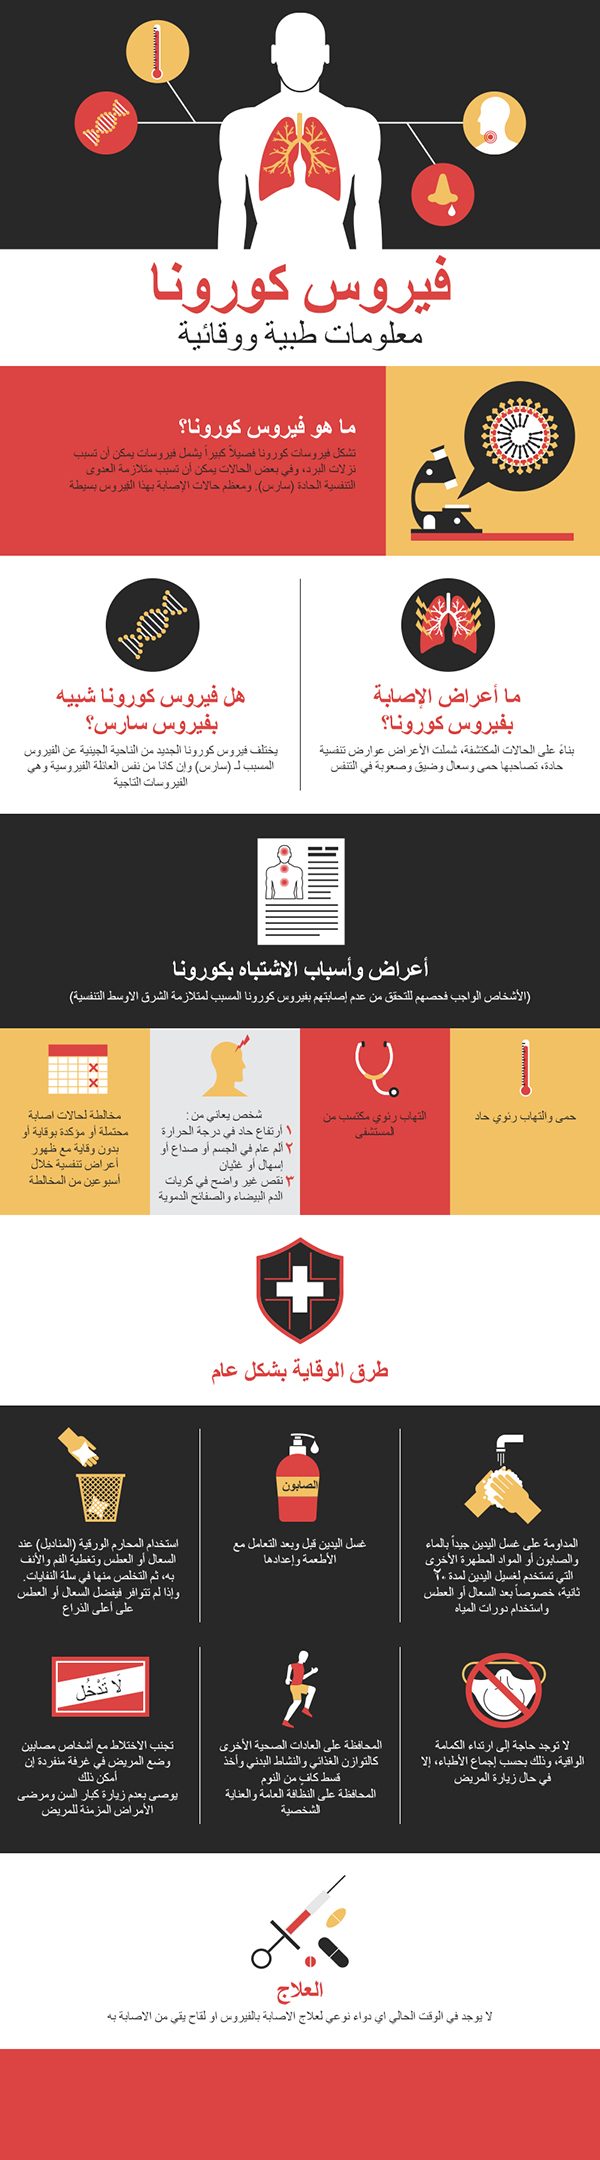 Coronavirus Awareness | Arabic